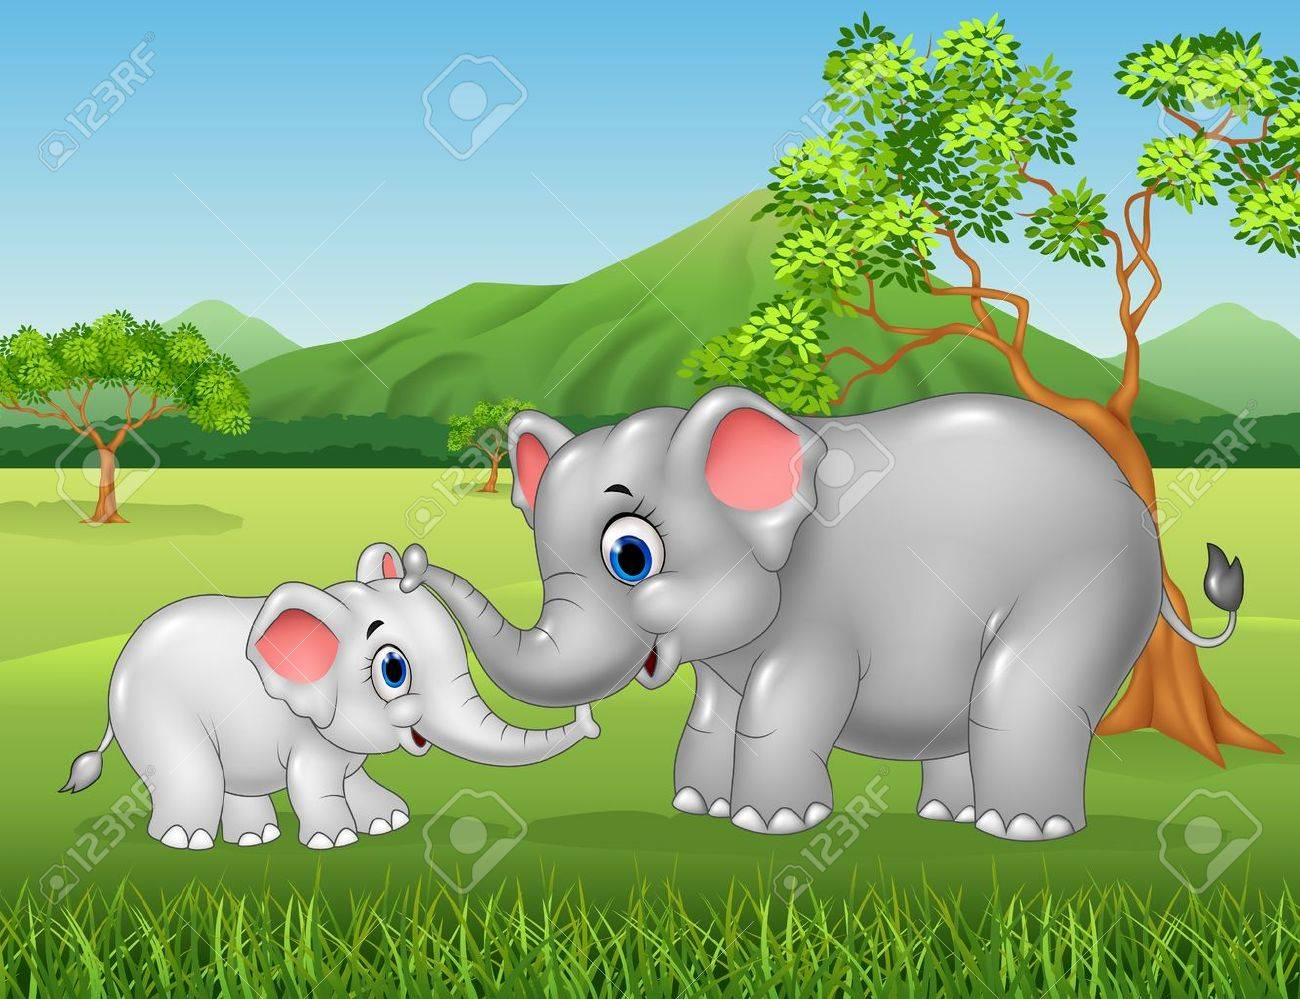 Vector illustration of Cartoon elephant mother and calf bonding relationship in the jungle - 53334764